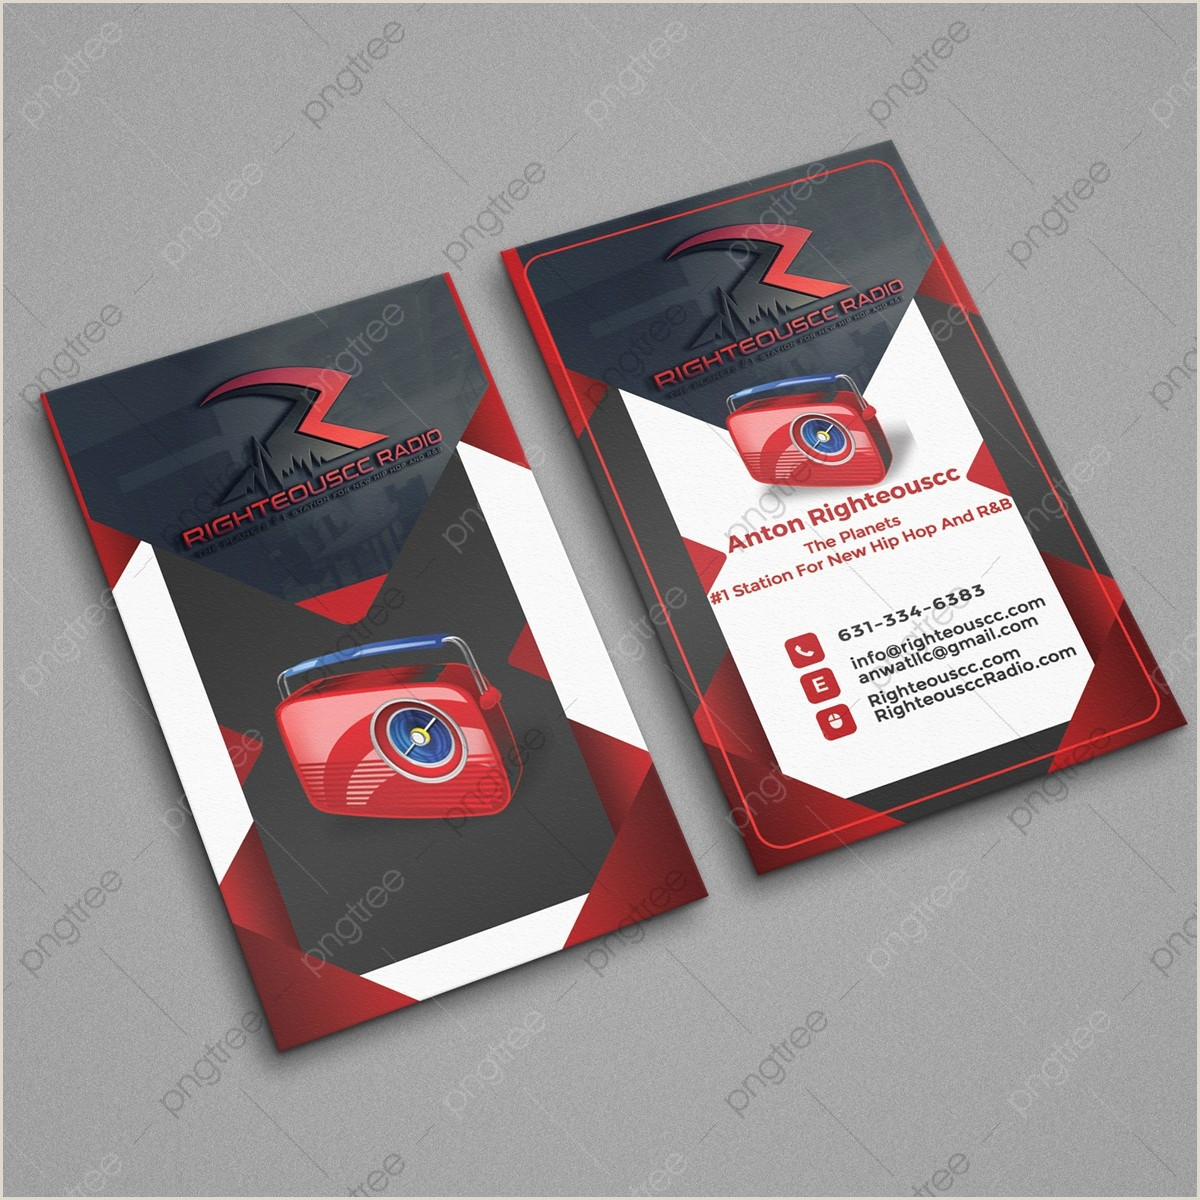 Music Business Card Design Music Business Card Png Vector And Psd Files